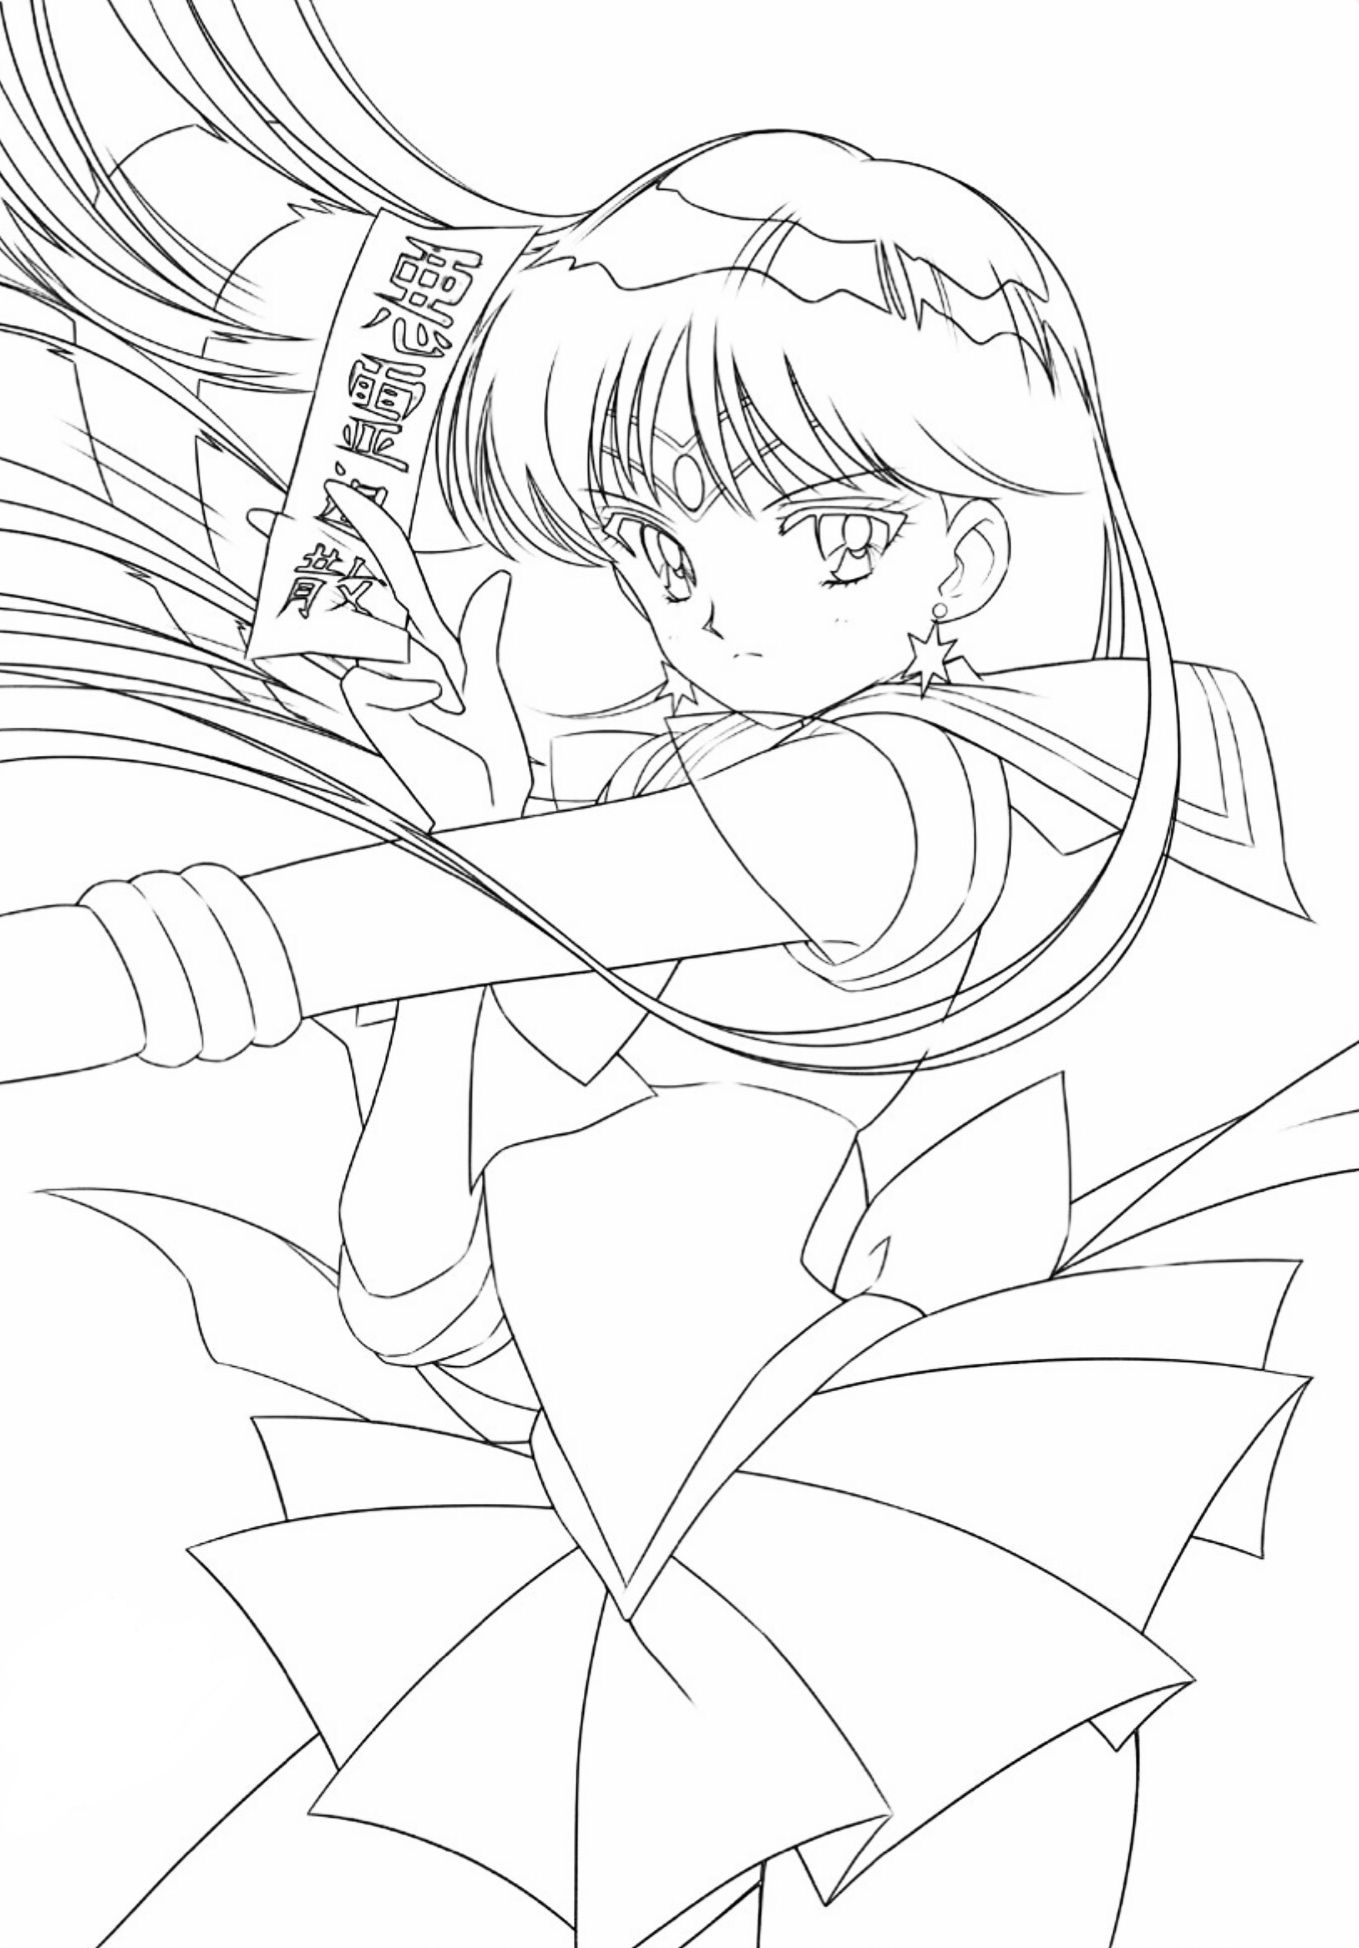 Sailor Mars Sailor moon coloring pages, Sailor moon crafts